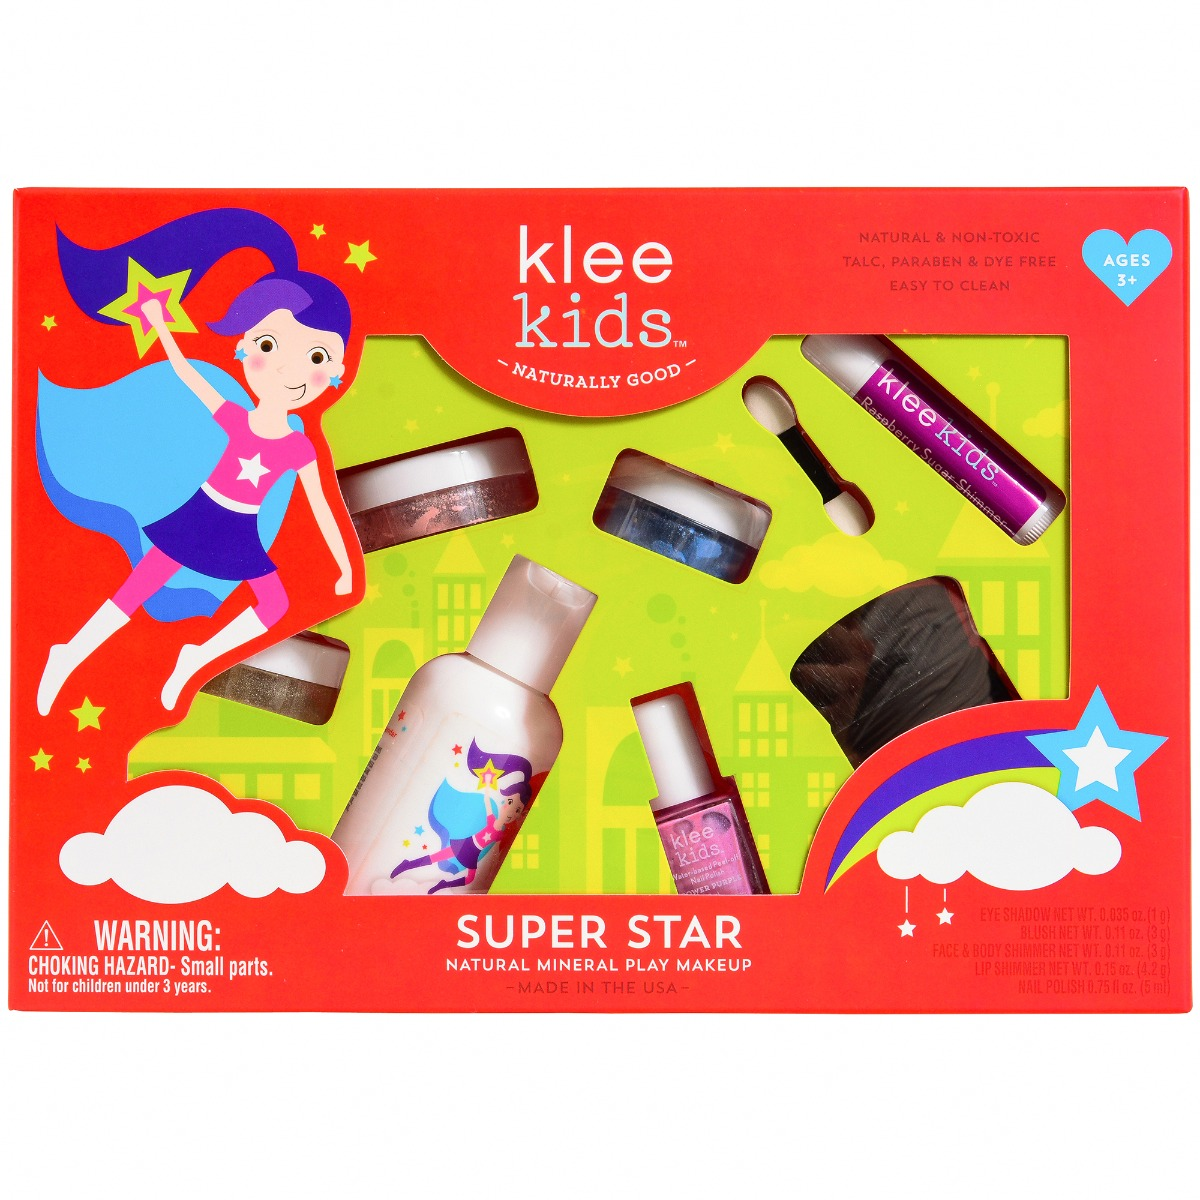 Natural Play Makeup Set - Super Star